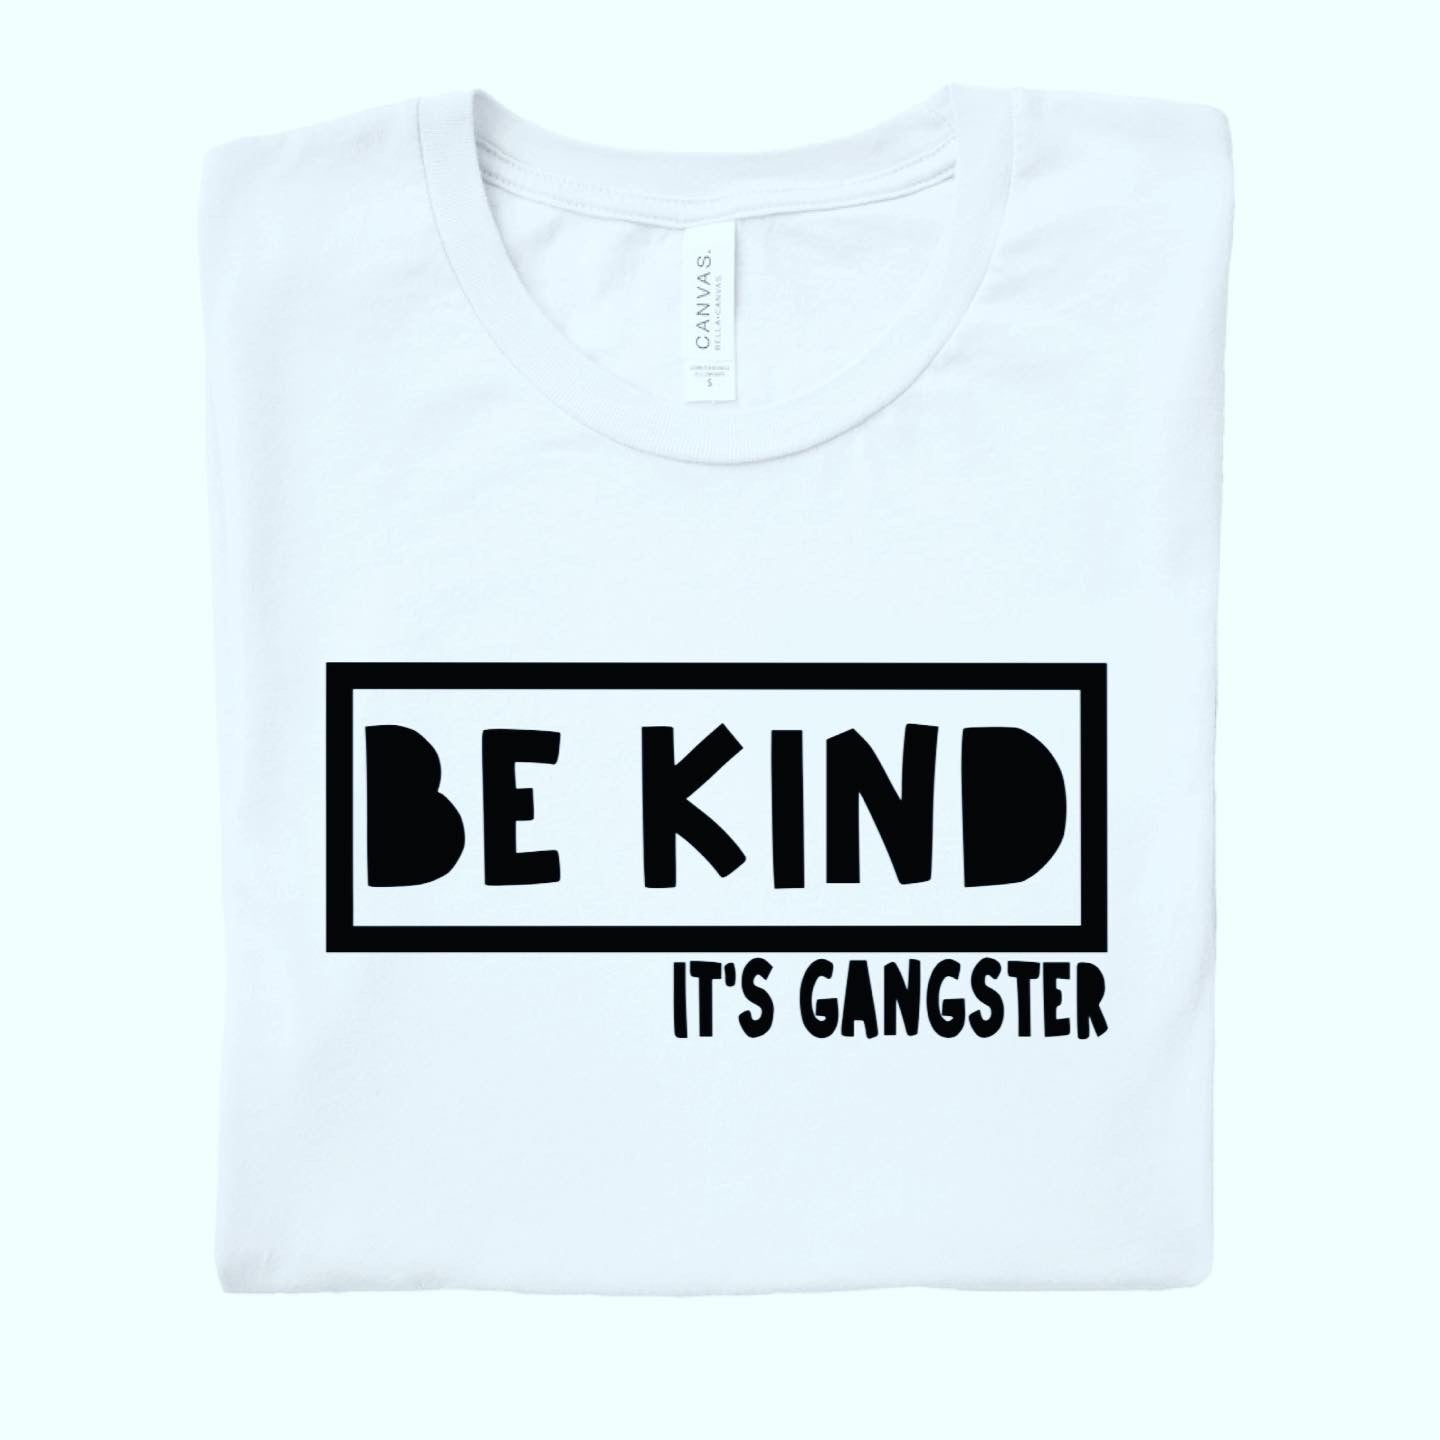 Be kind it's gangster adults tee